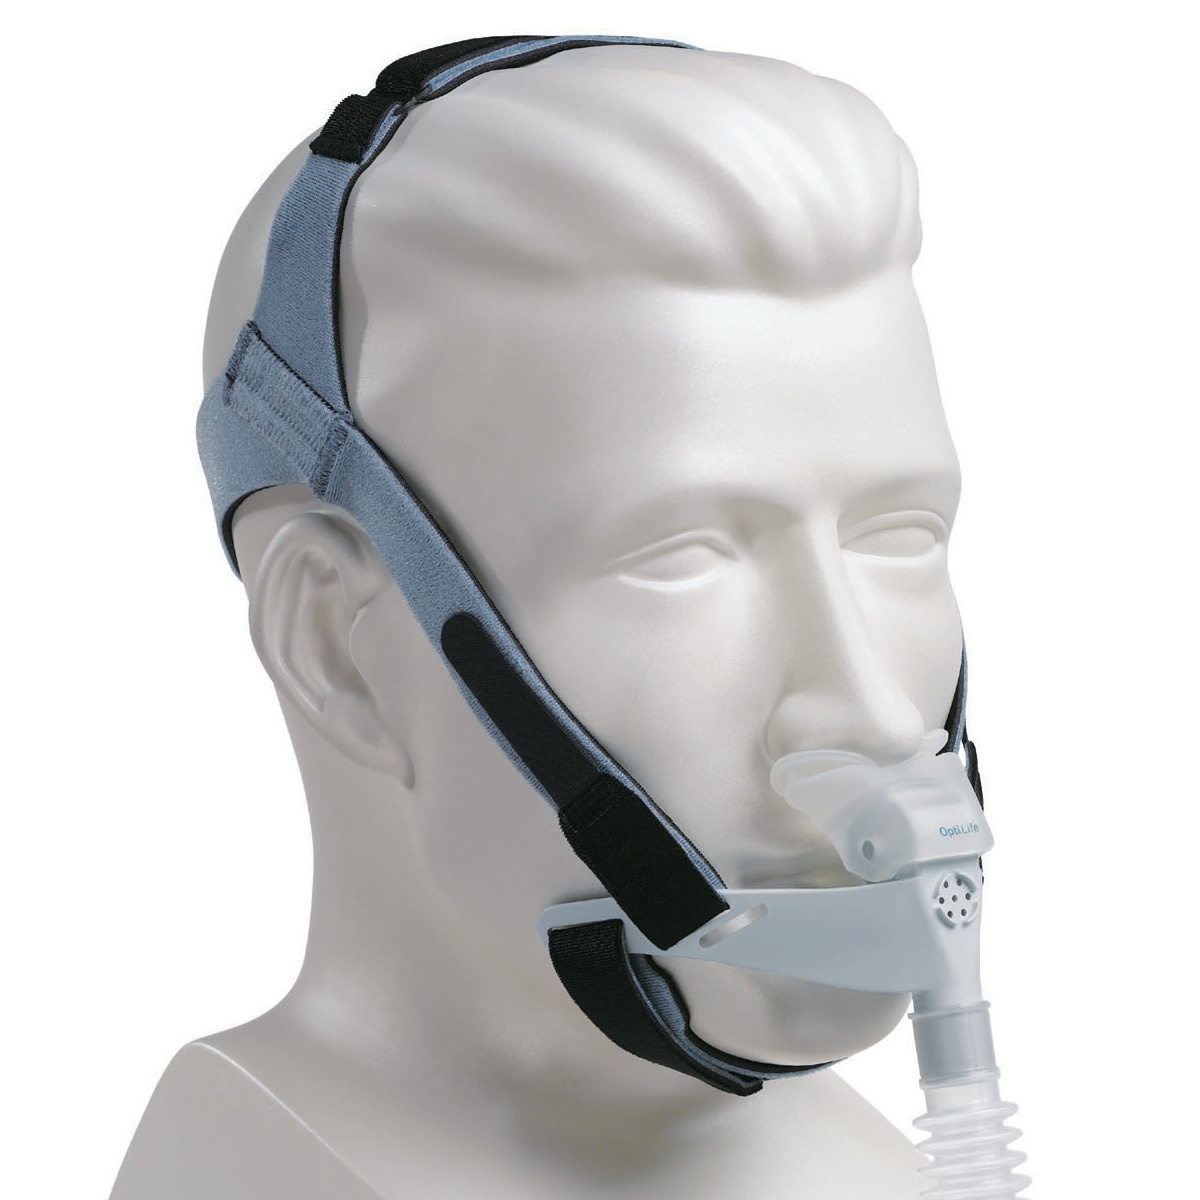 try the for works best sleep cpapmasks cpap and strap masks that fits may different to before of mask need styles a pillow no treatment patient often types apnea finding size placements one nose